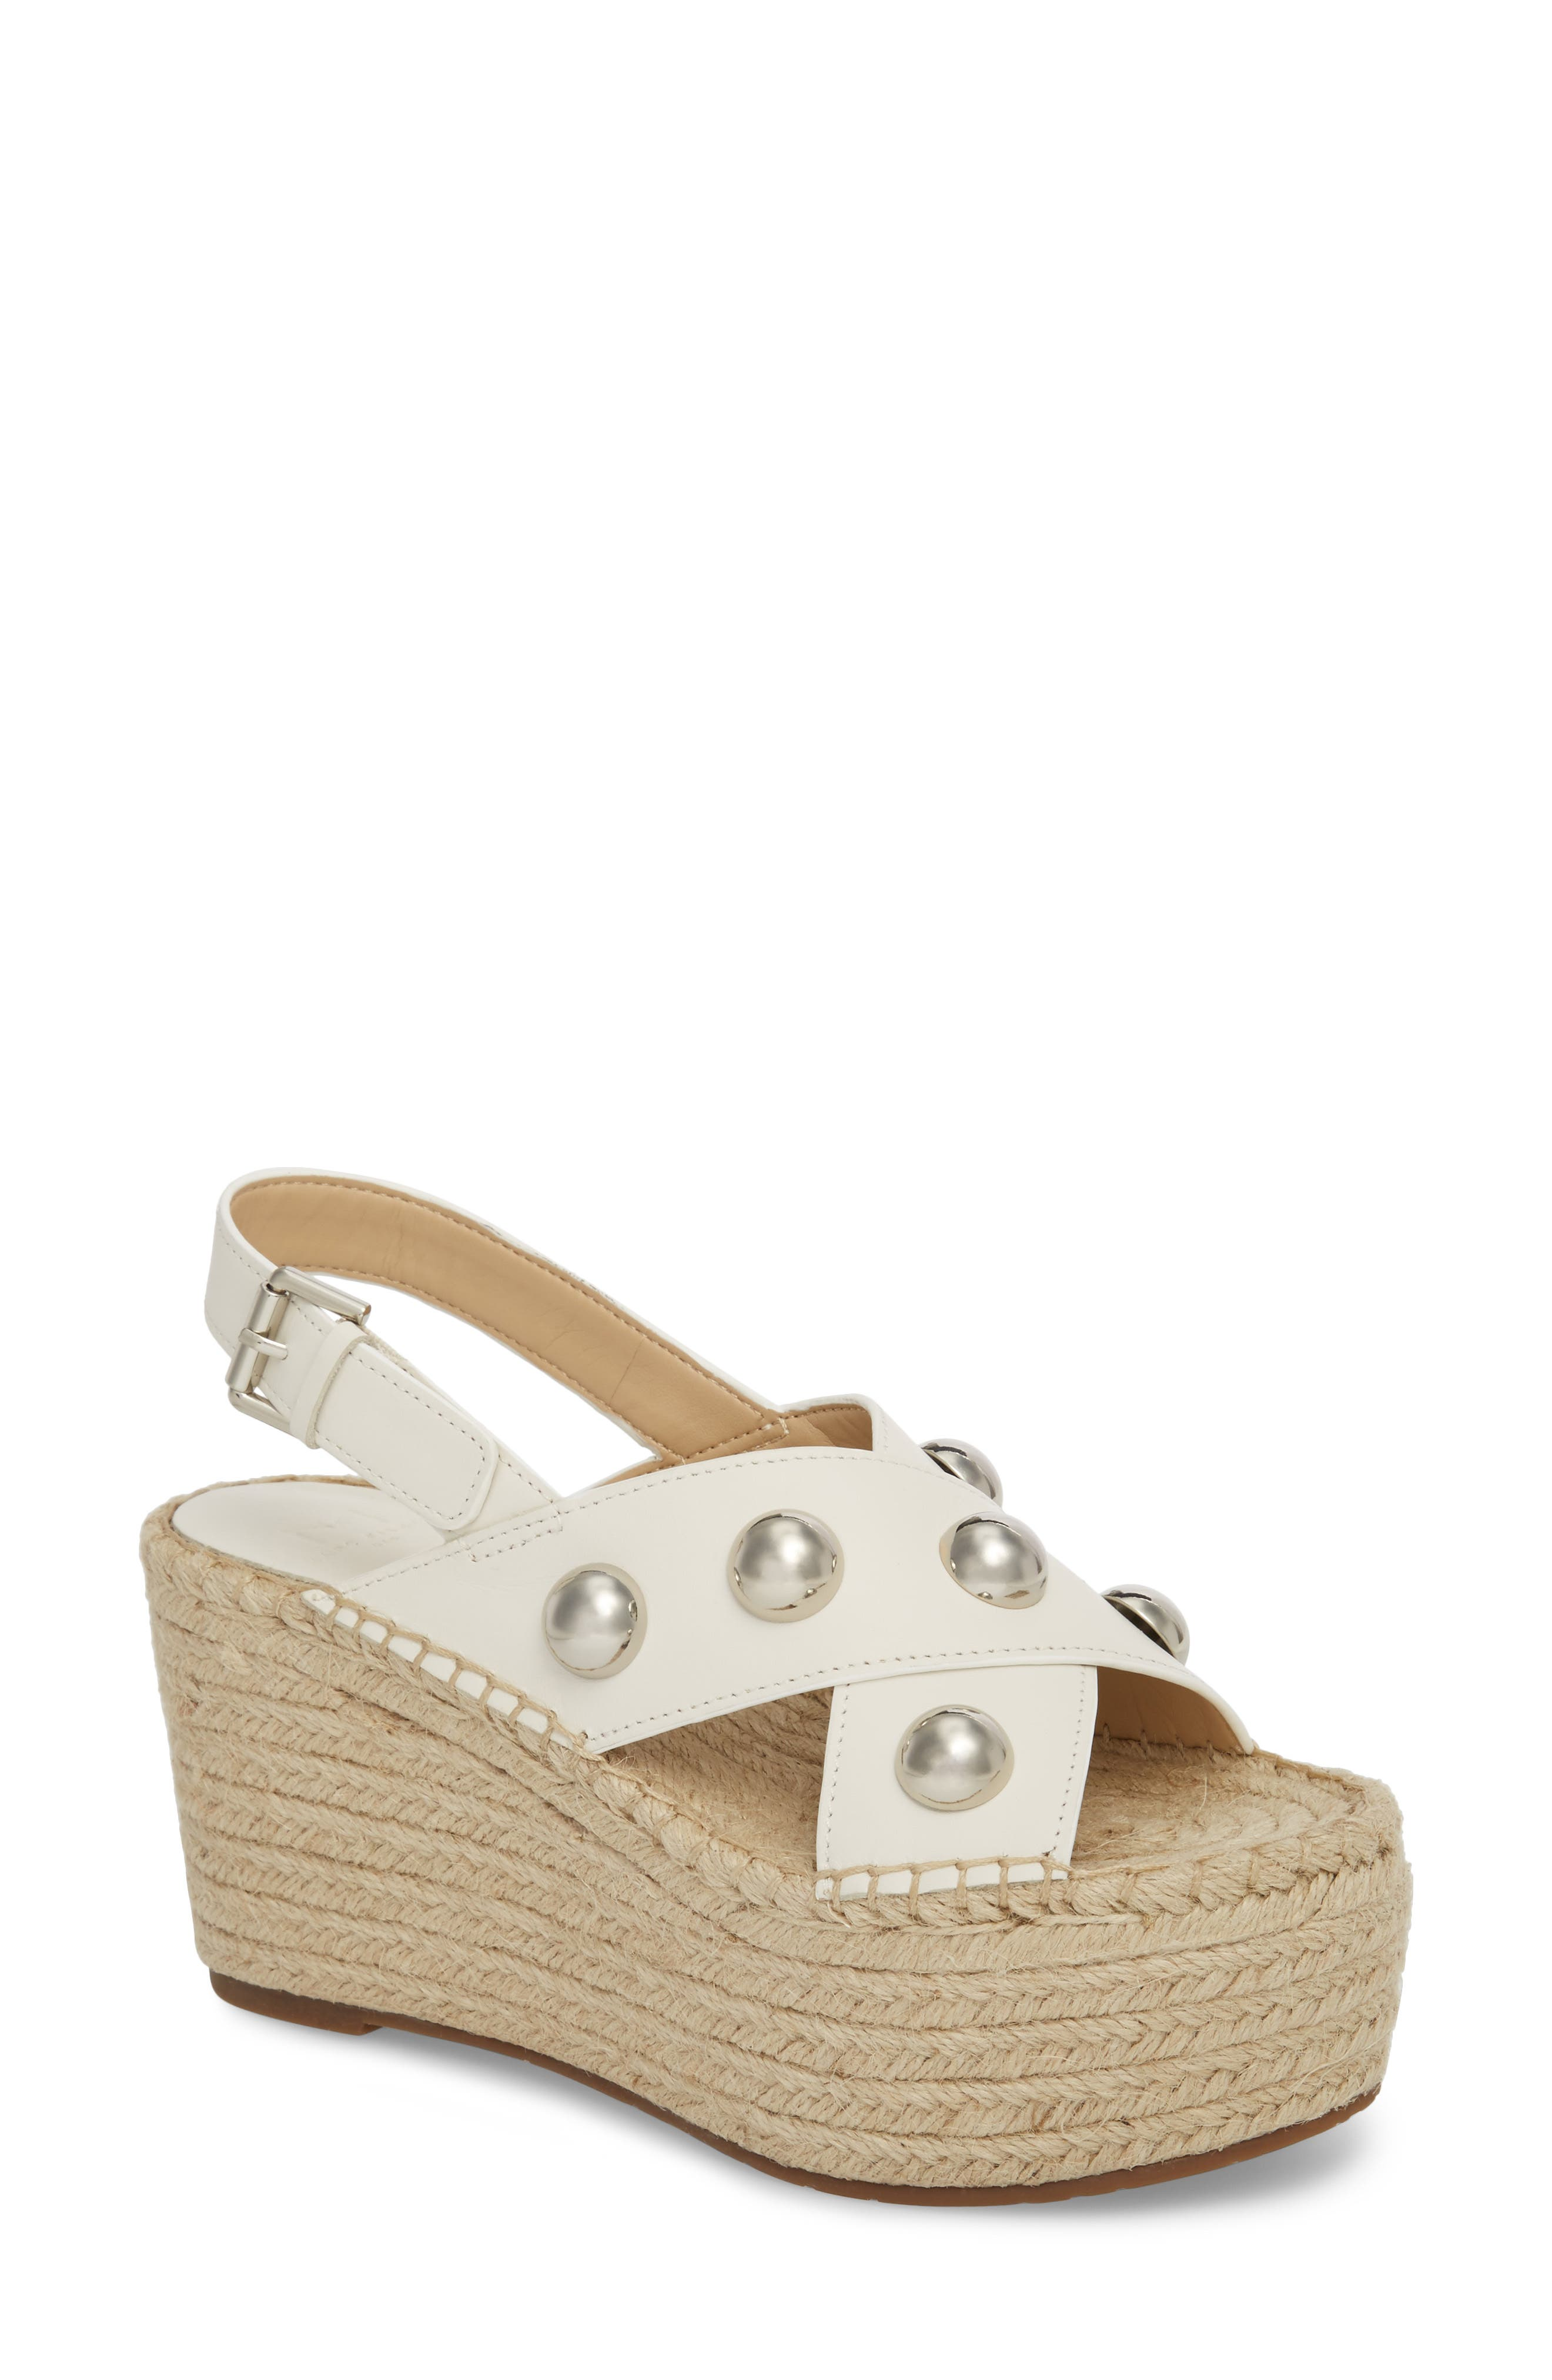 Rella Espadrille Platform Sandal,                             Main thumbnail 1, color,                             Ivory Leather